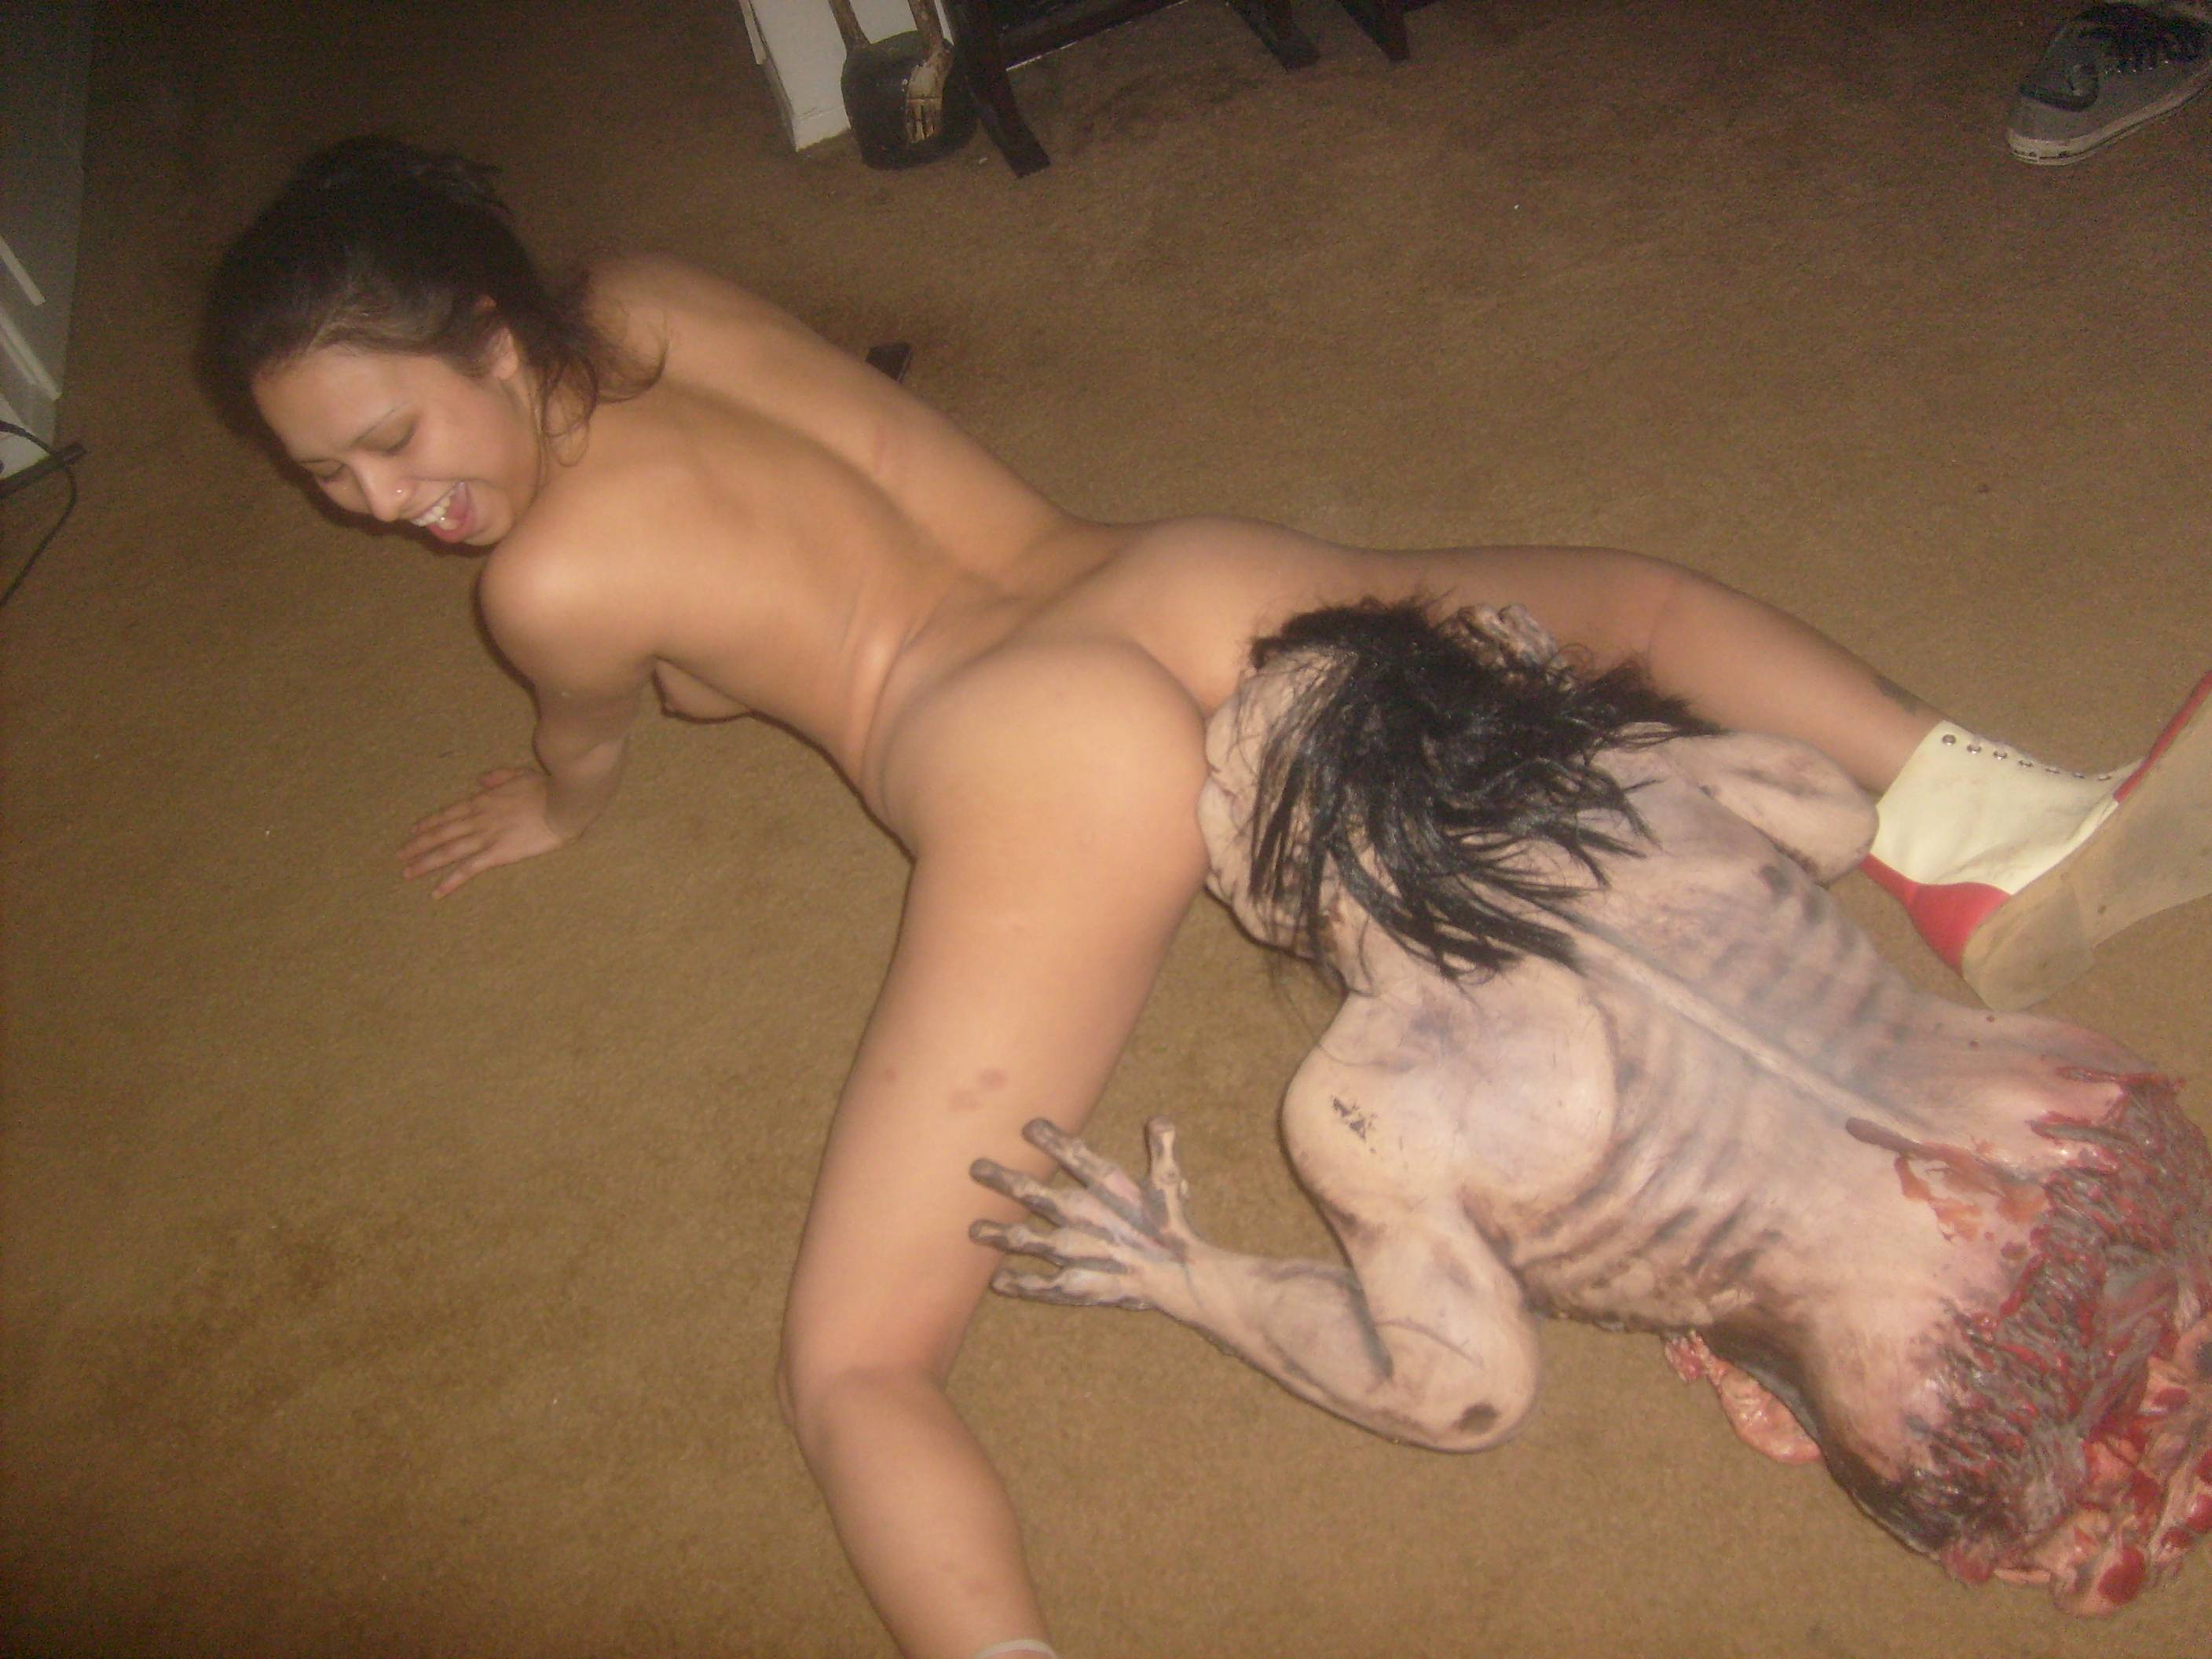 Zombie eating girl vagina porn nackt picture